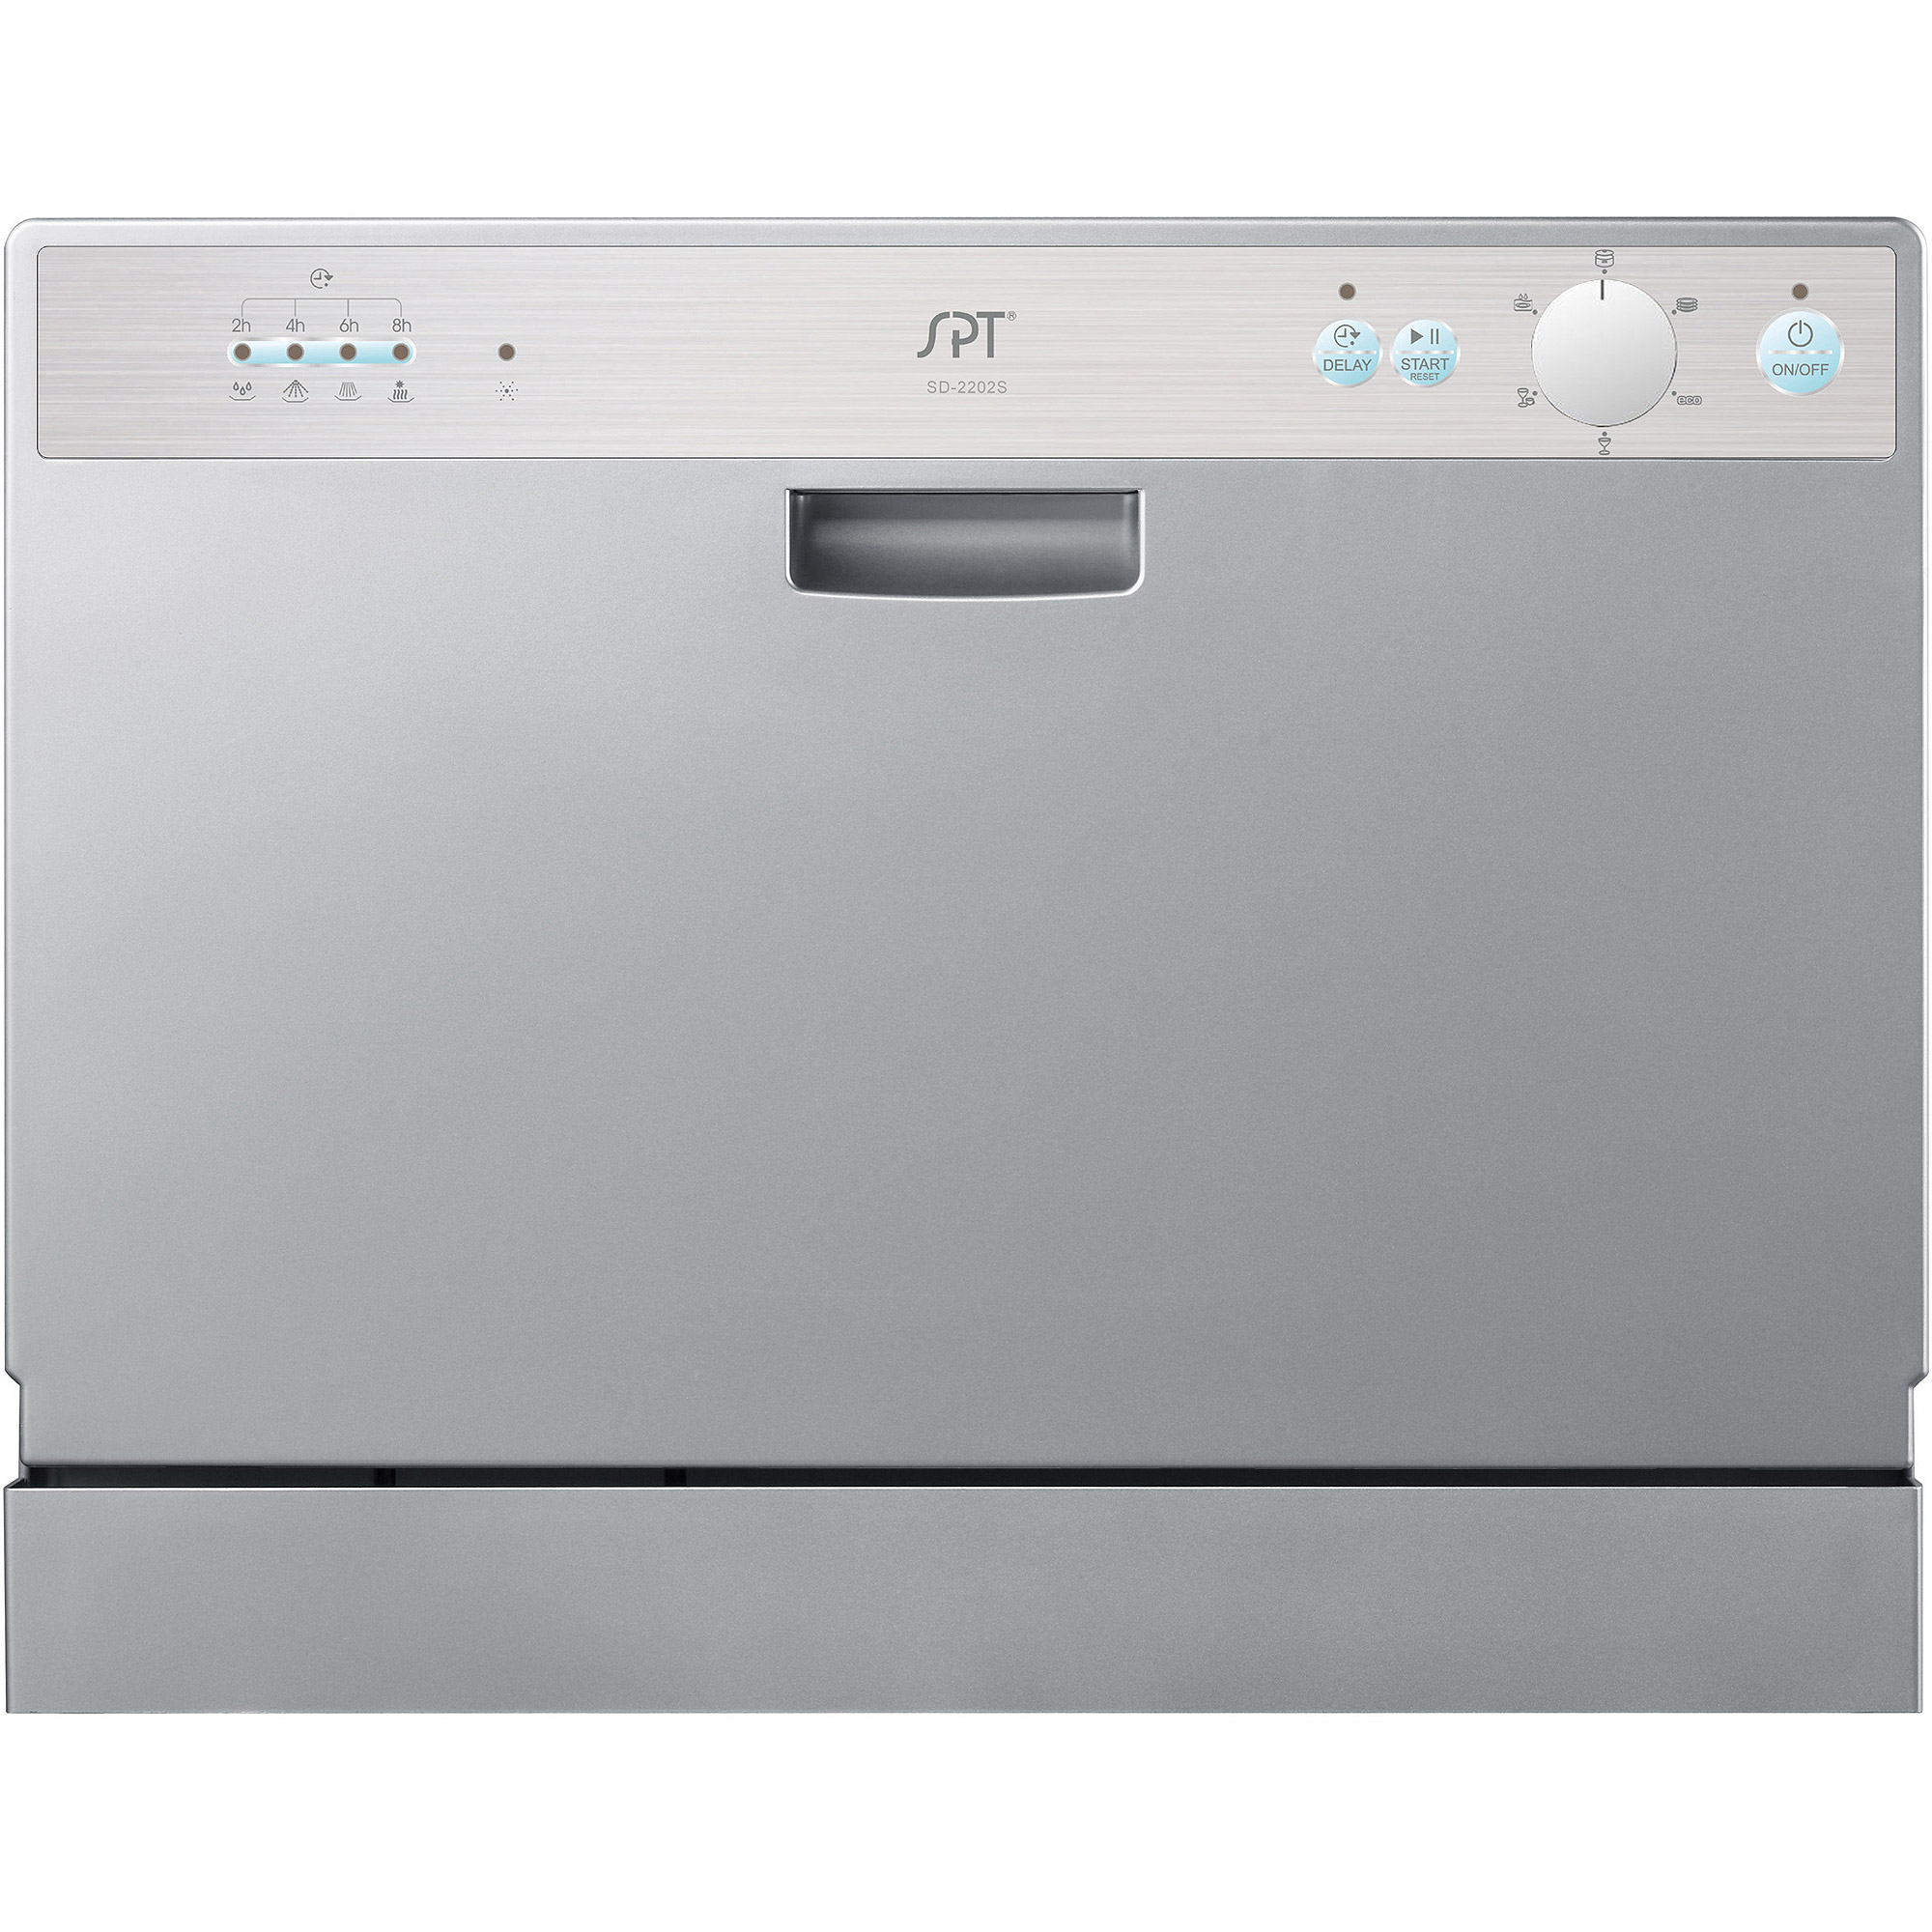 front wash magic sanitize fully bin countertop with ajmadison dishwasher digital rack system integrated countertops adjustable nsf leak cgi chef sensor certified samsung advanced touch